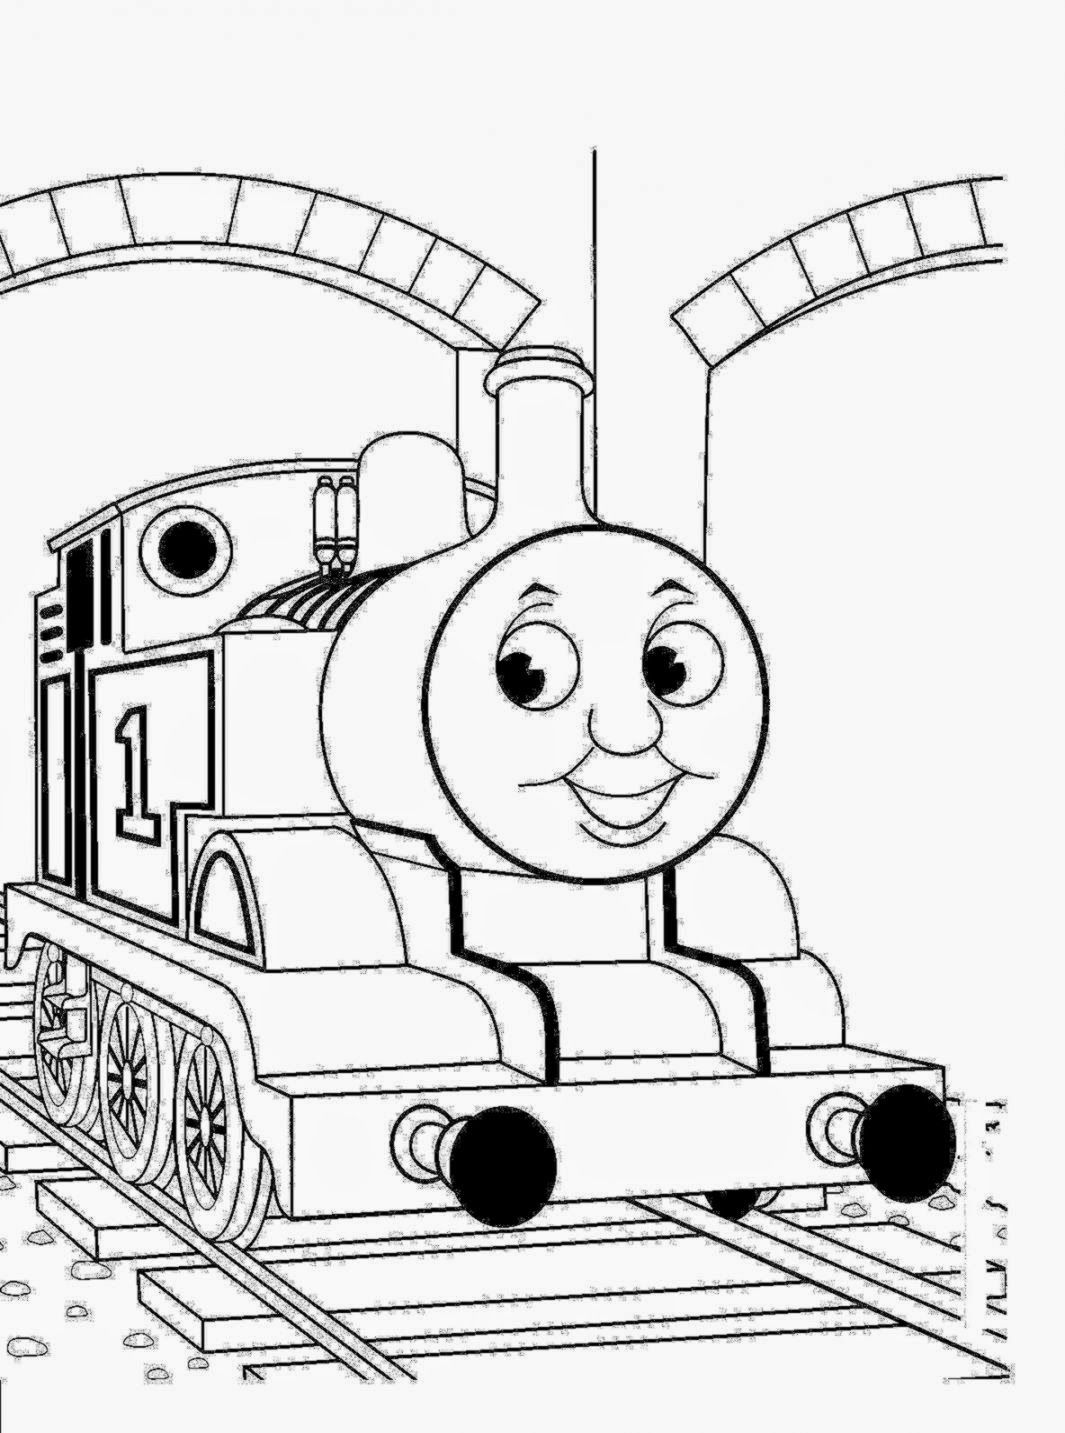 coloring pages trains train coloring pages download and print train coloring pages coloring pages trains